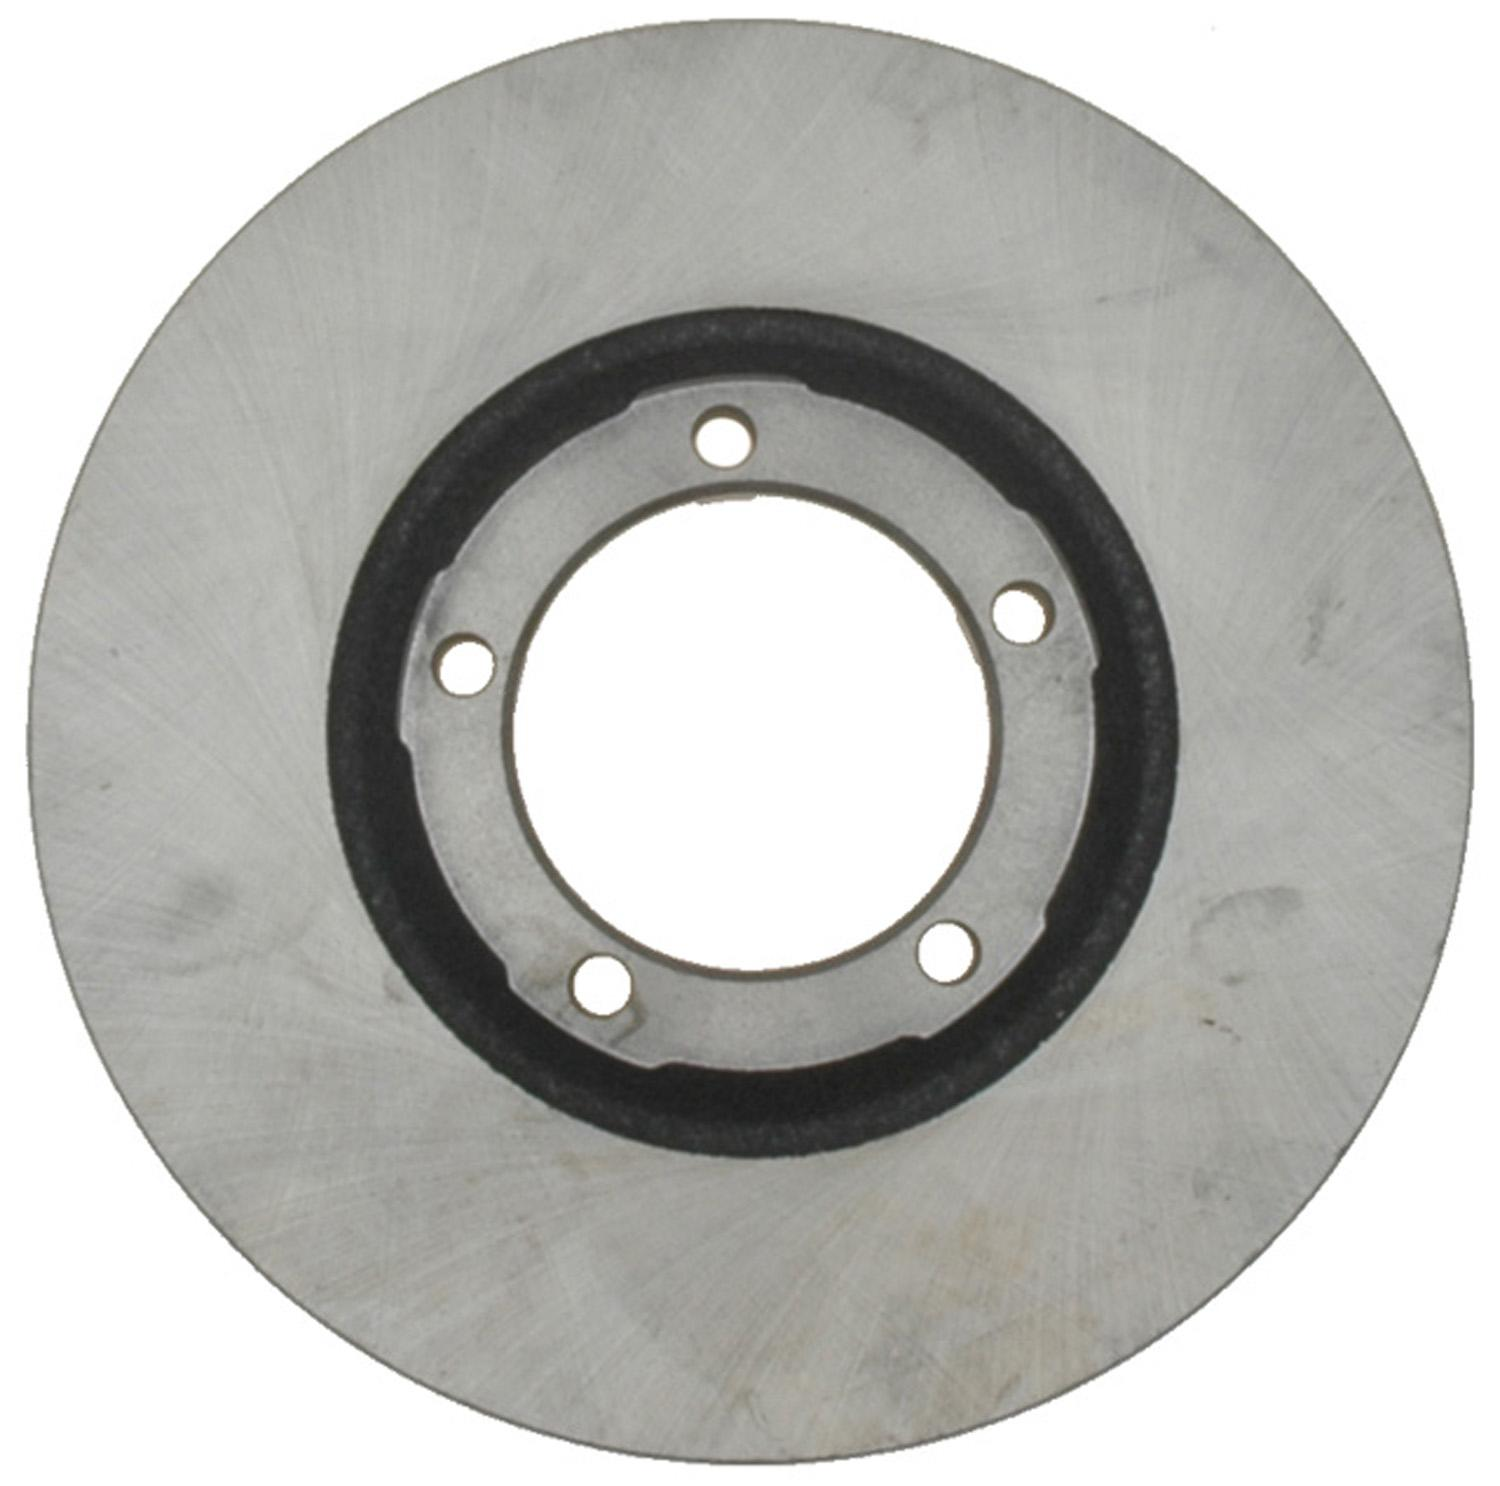 ACDELCO ADVANTAGE - Non-Coated Disc Brake Rotor - DCD 18A869A